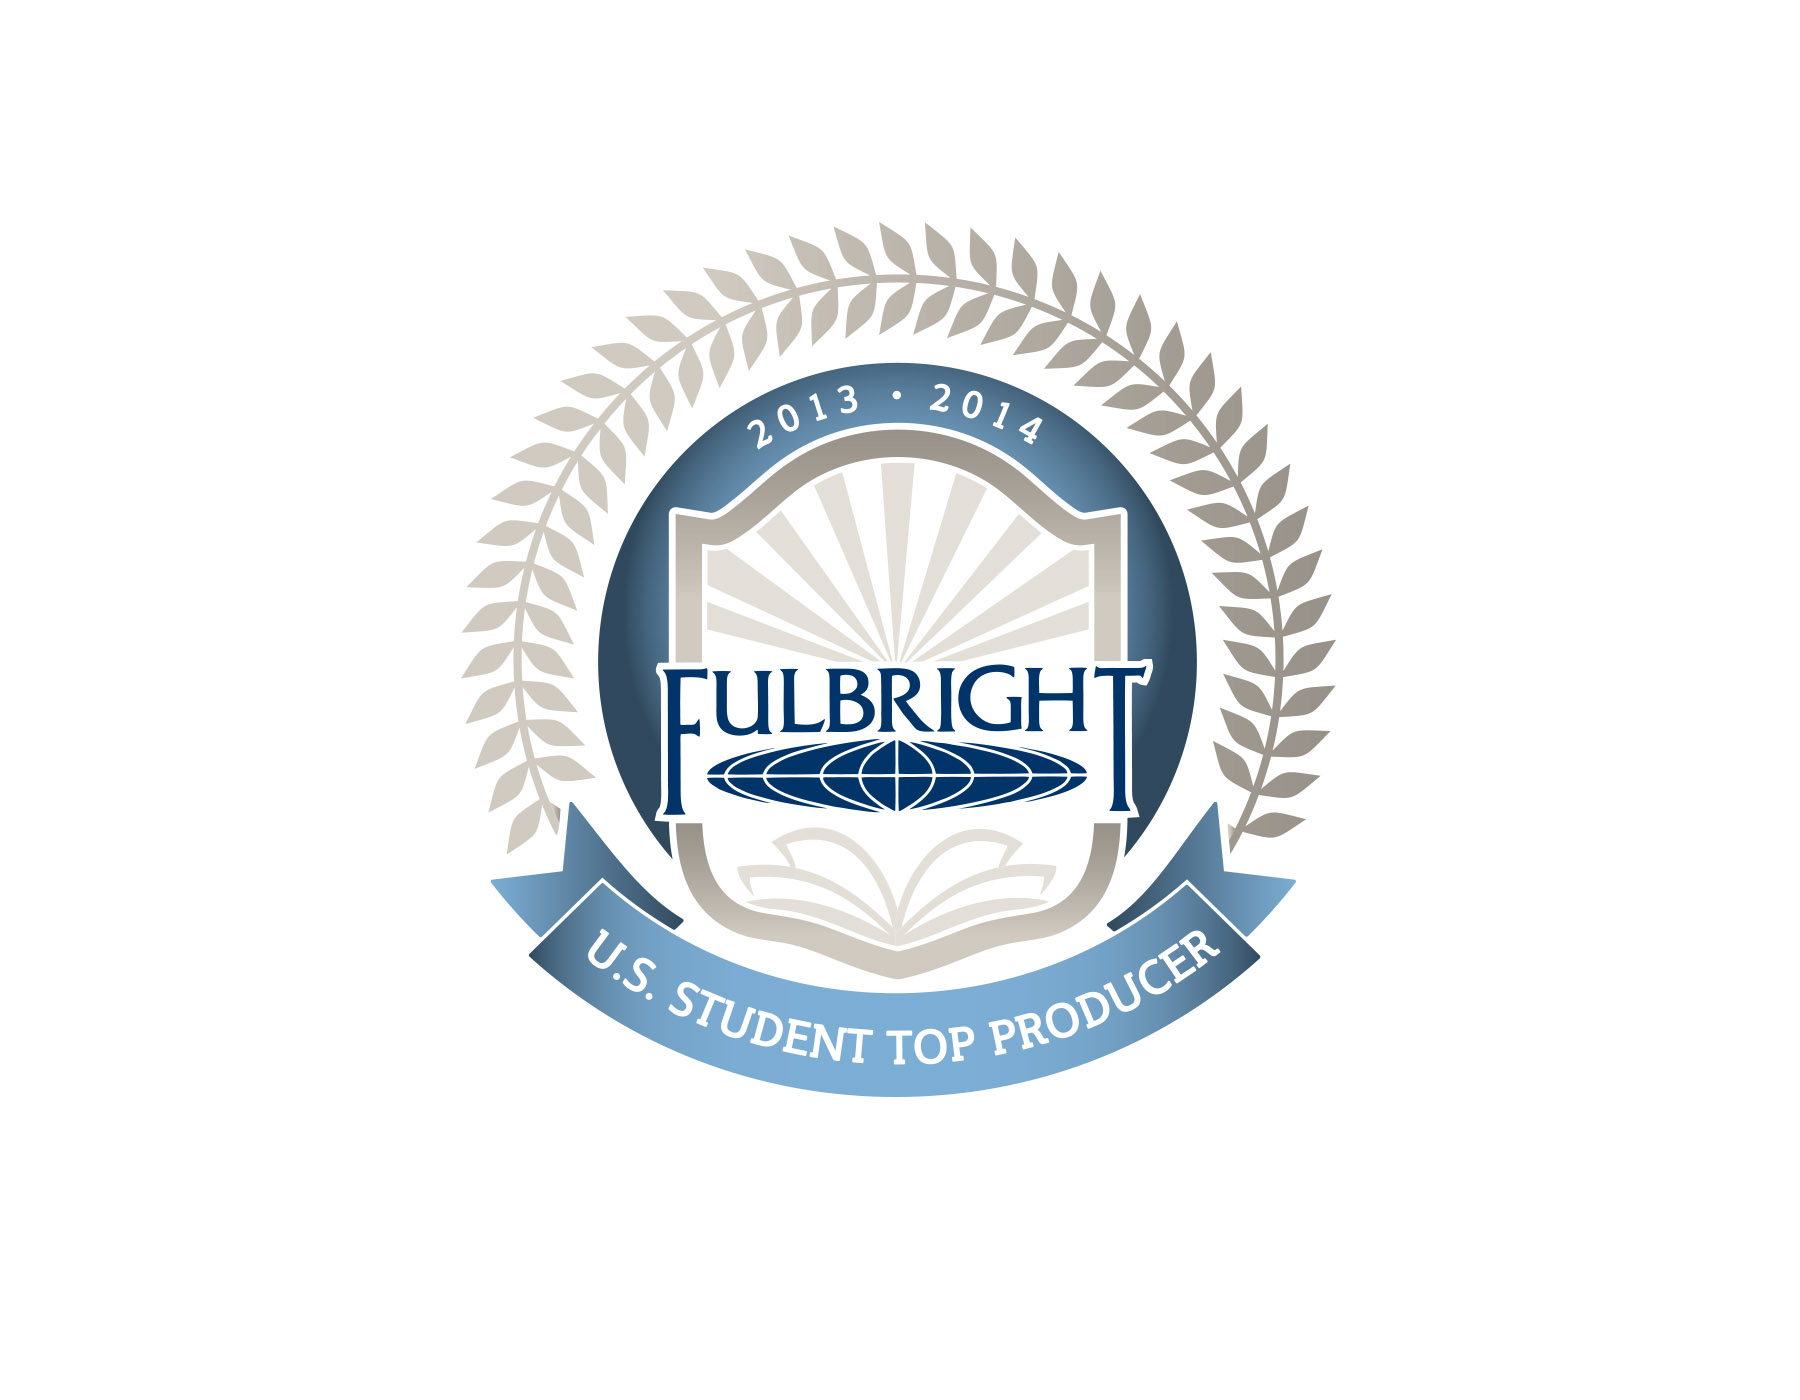 fulbright 2013-14